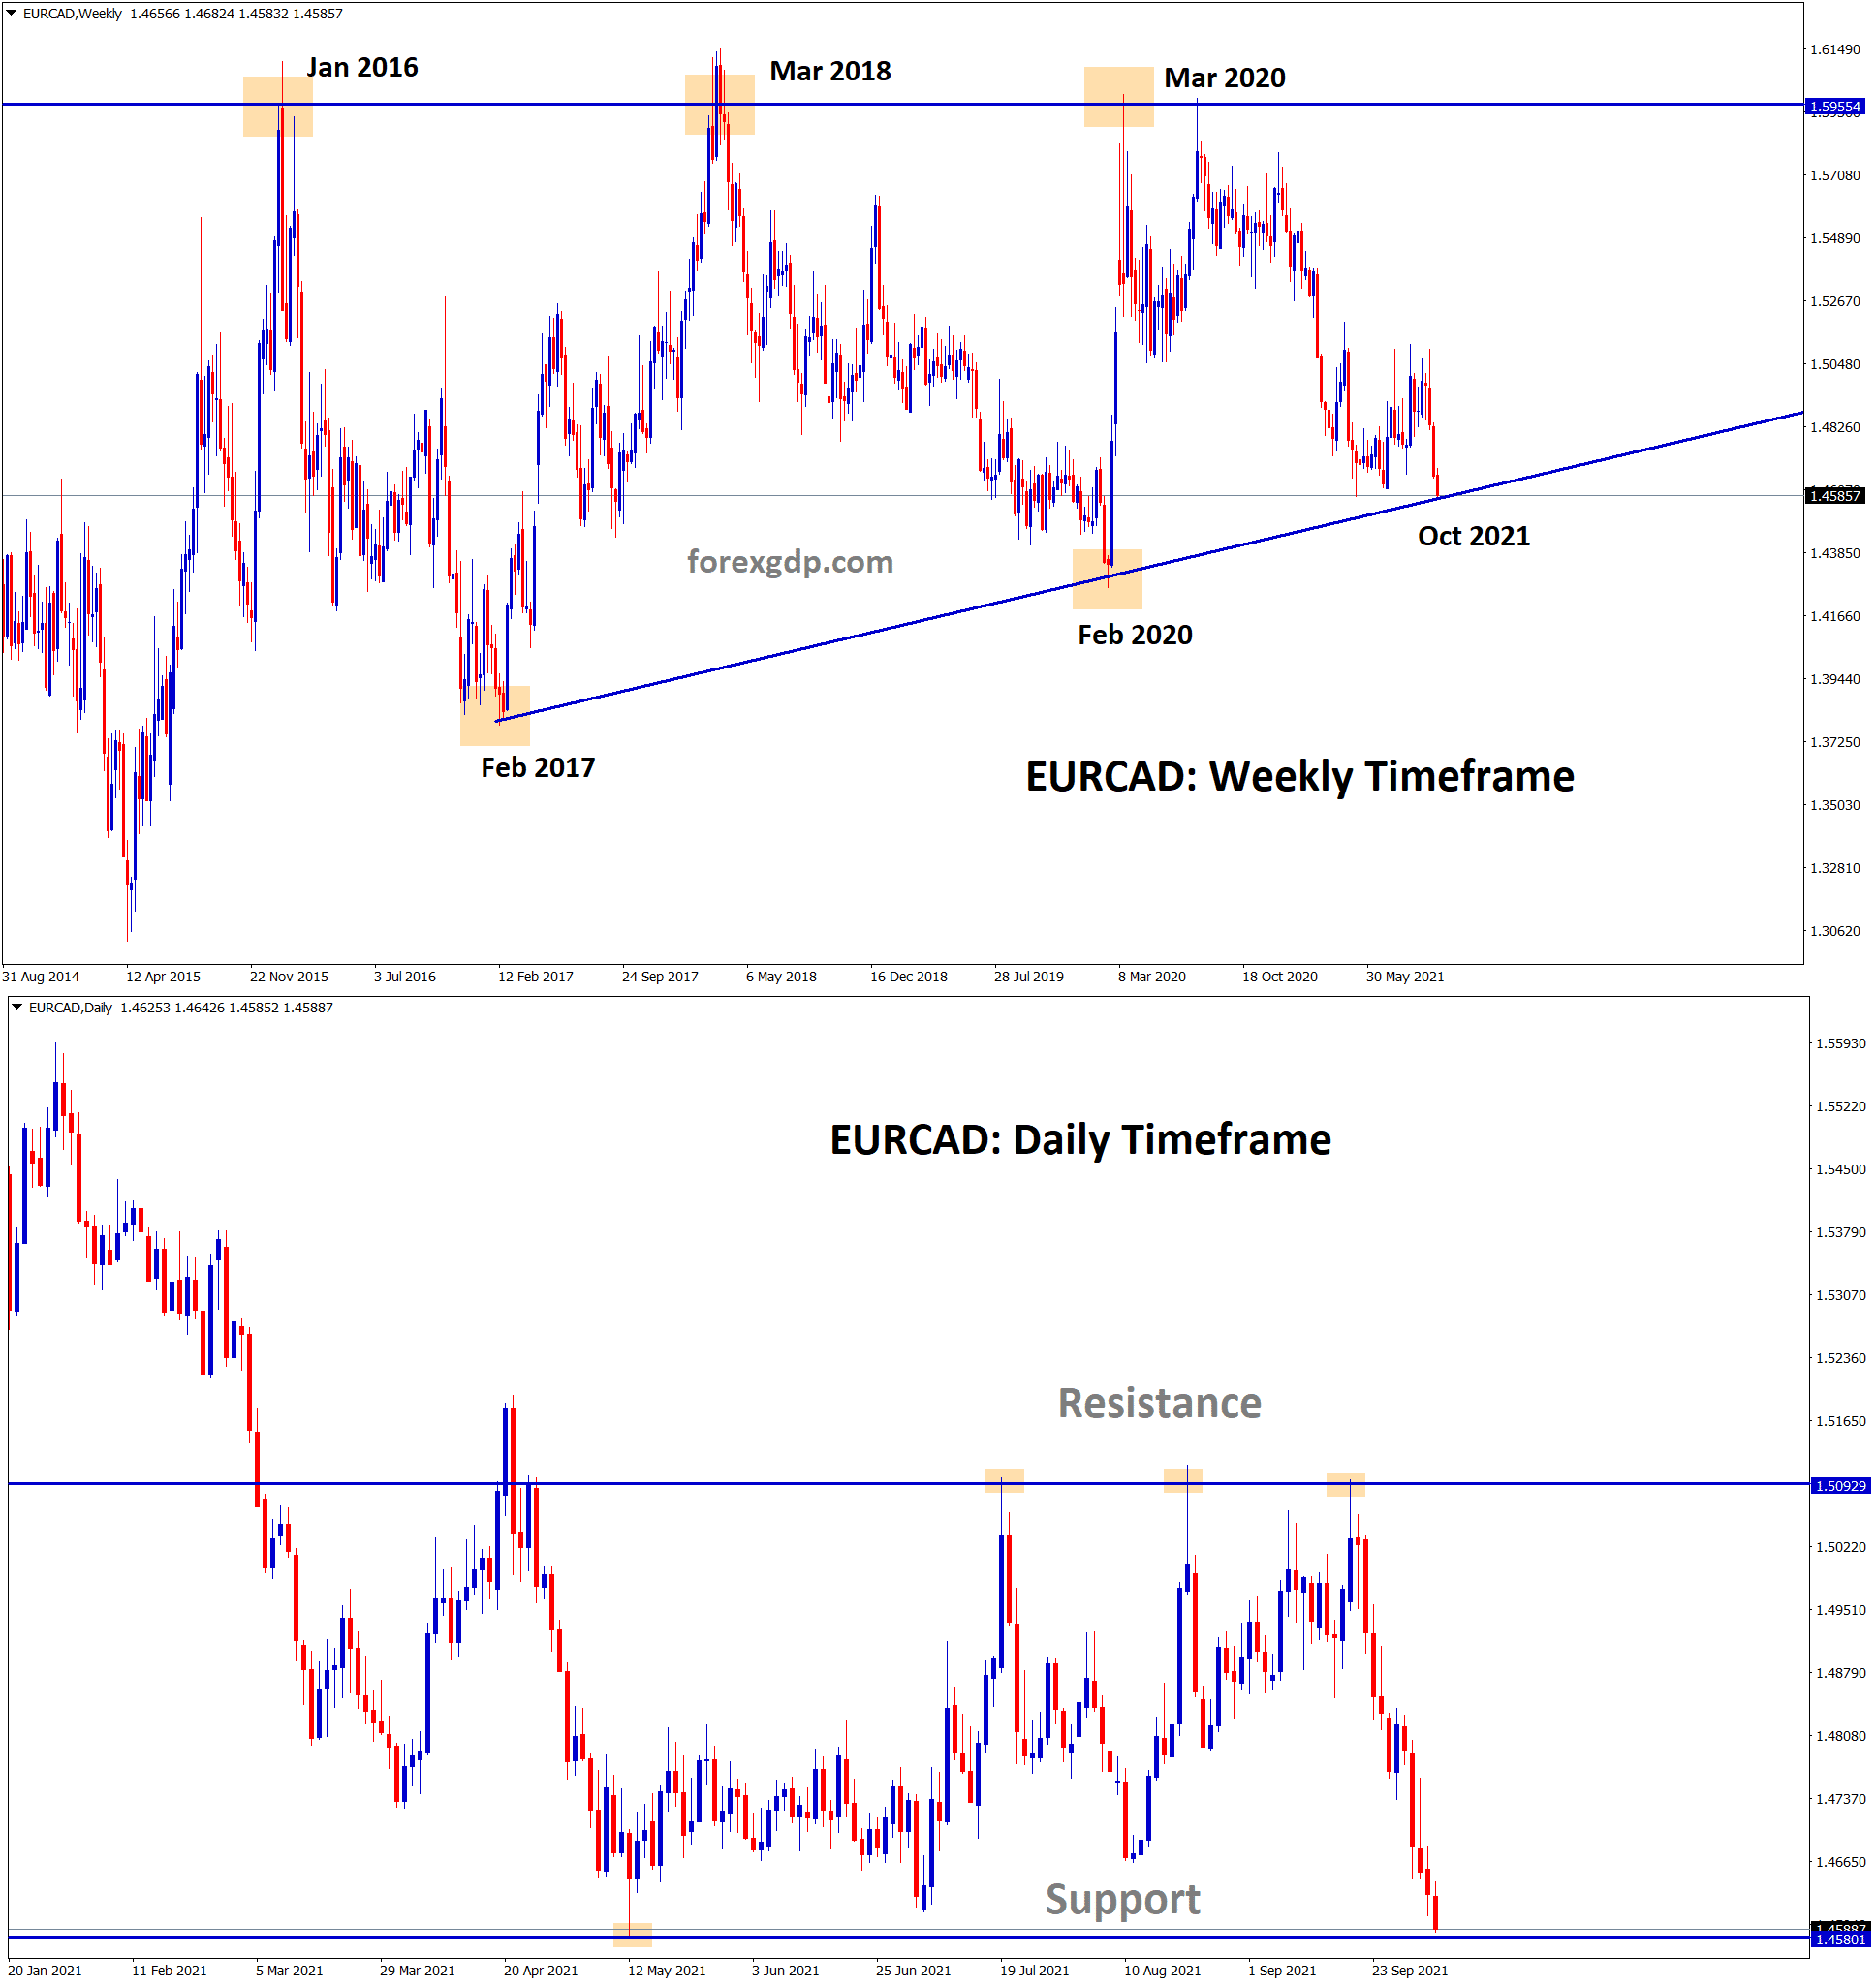 EURCAD is standing at the important support area